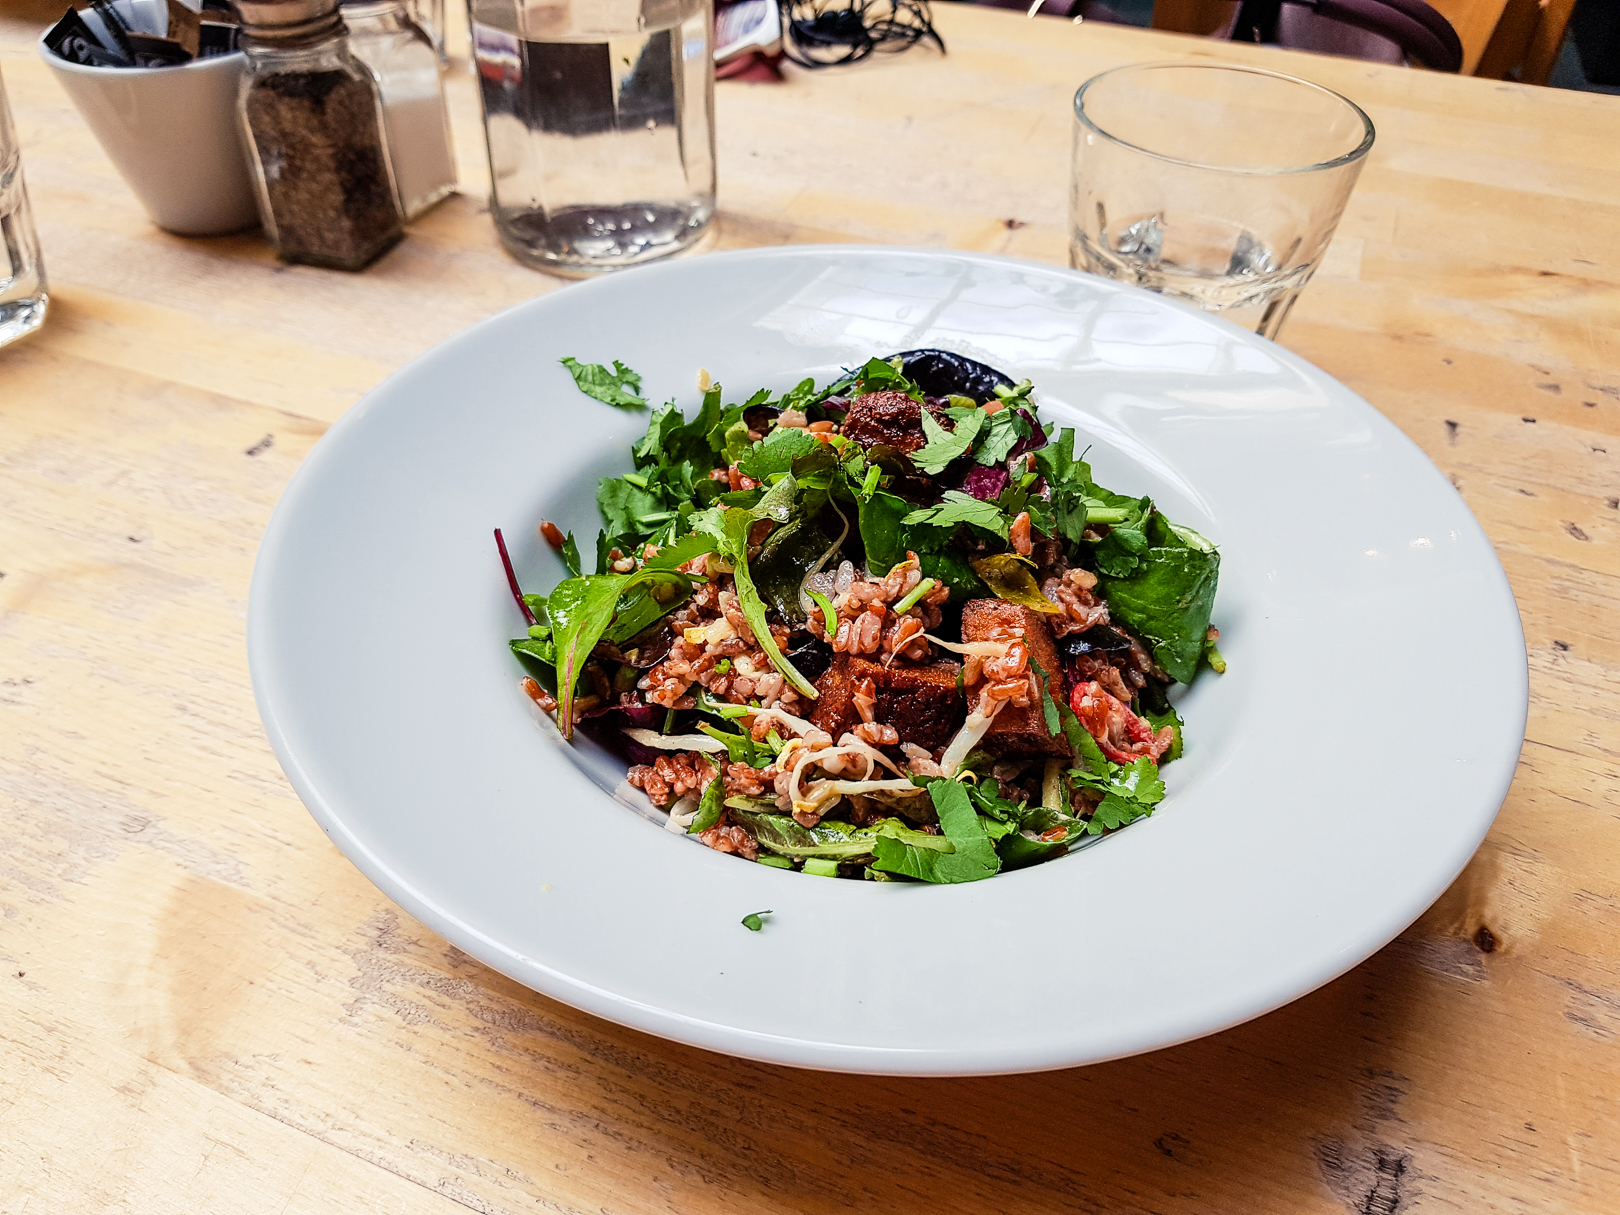 Wild rice and tofu salad at the Saramago Cafe Bar at the CCA in Glasgow.